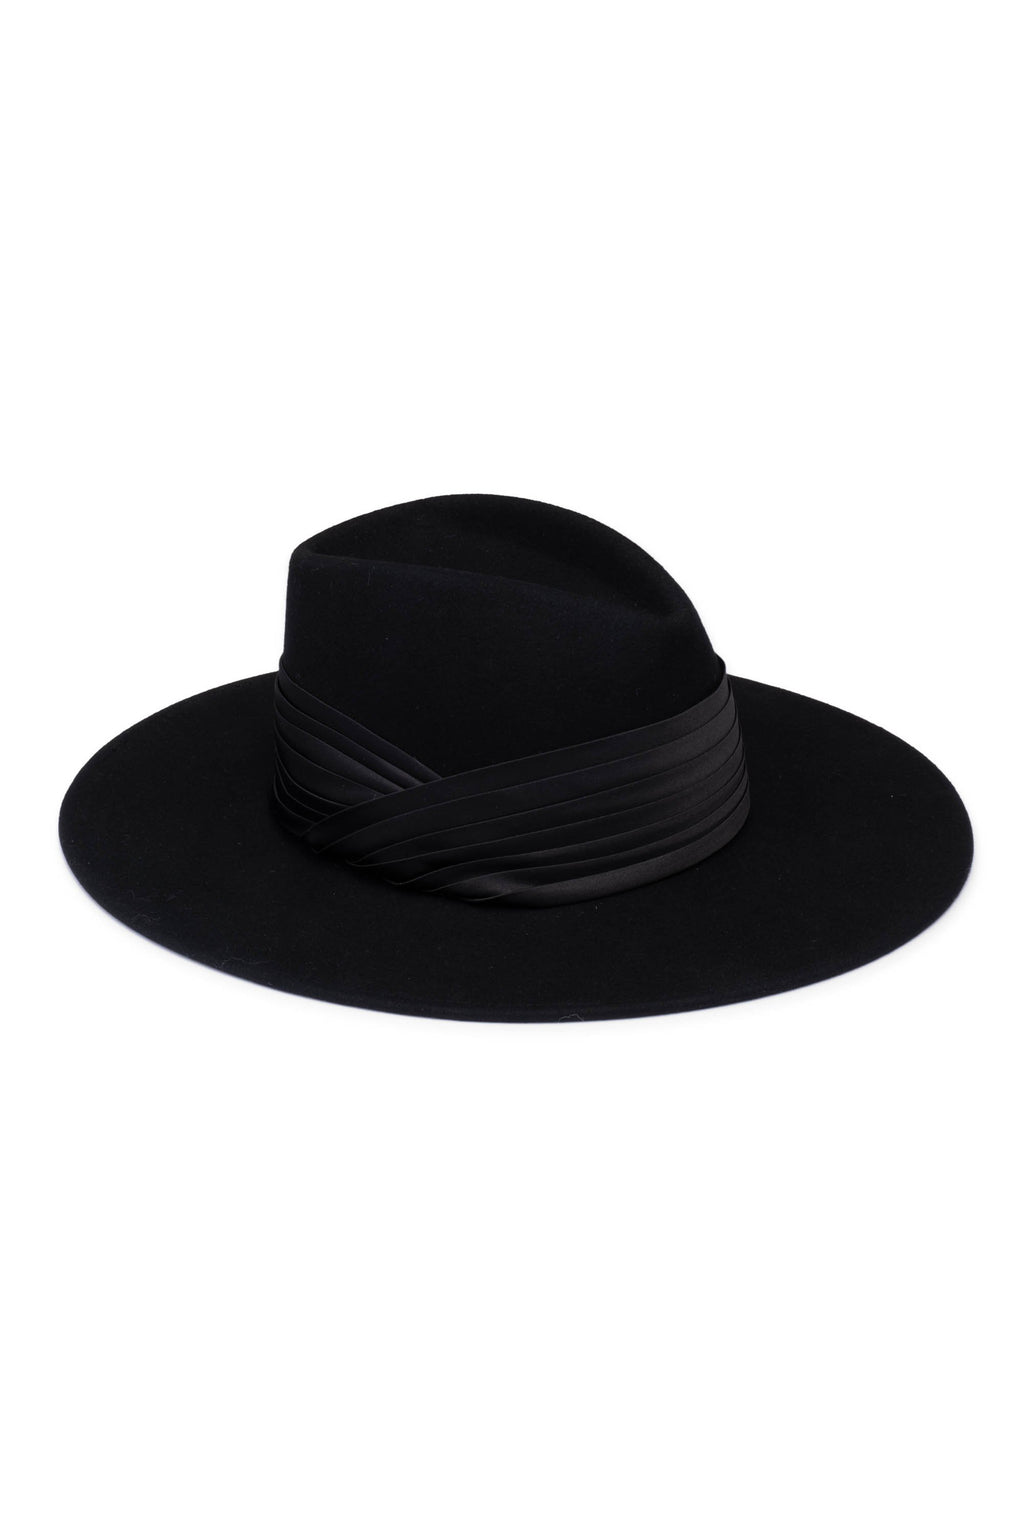 EUGENIA KIM BLACK HARLOWE HAT